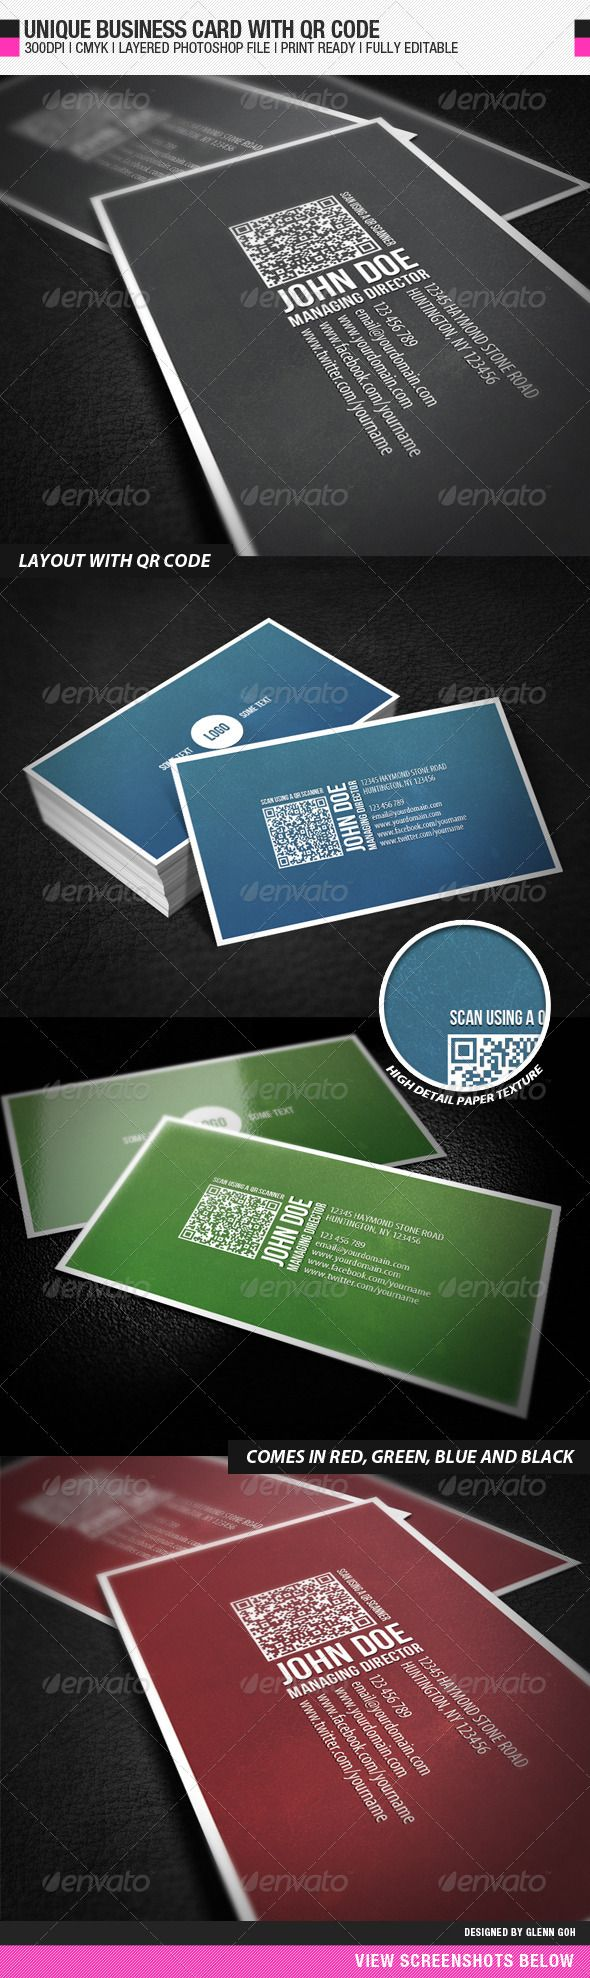 63 best images about business card on pinterest black for Designation on business cards